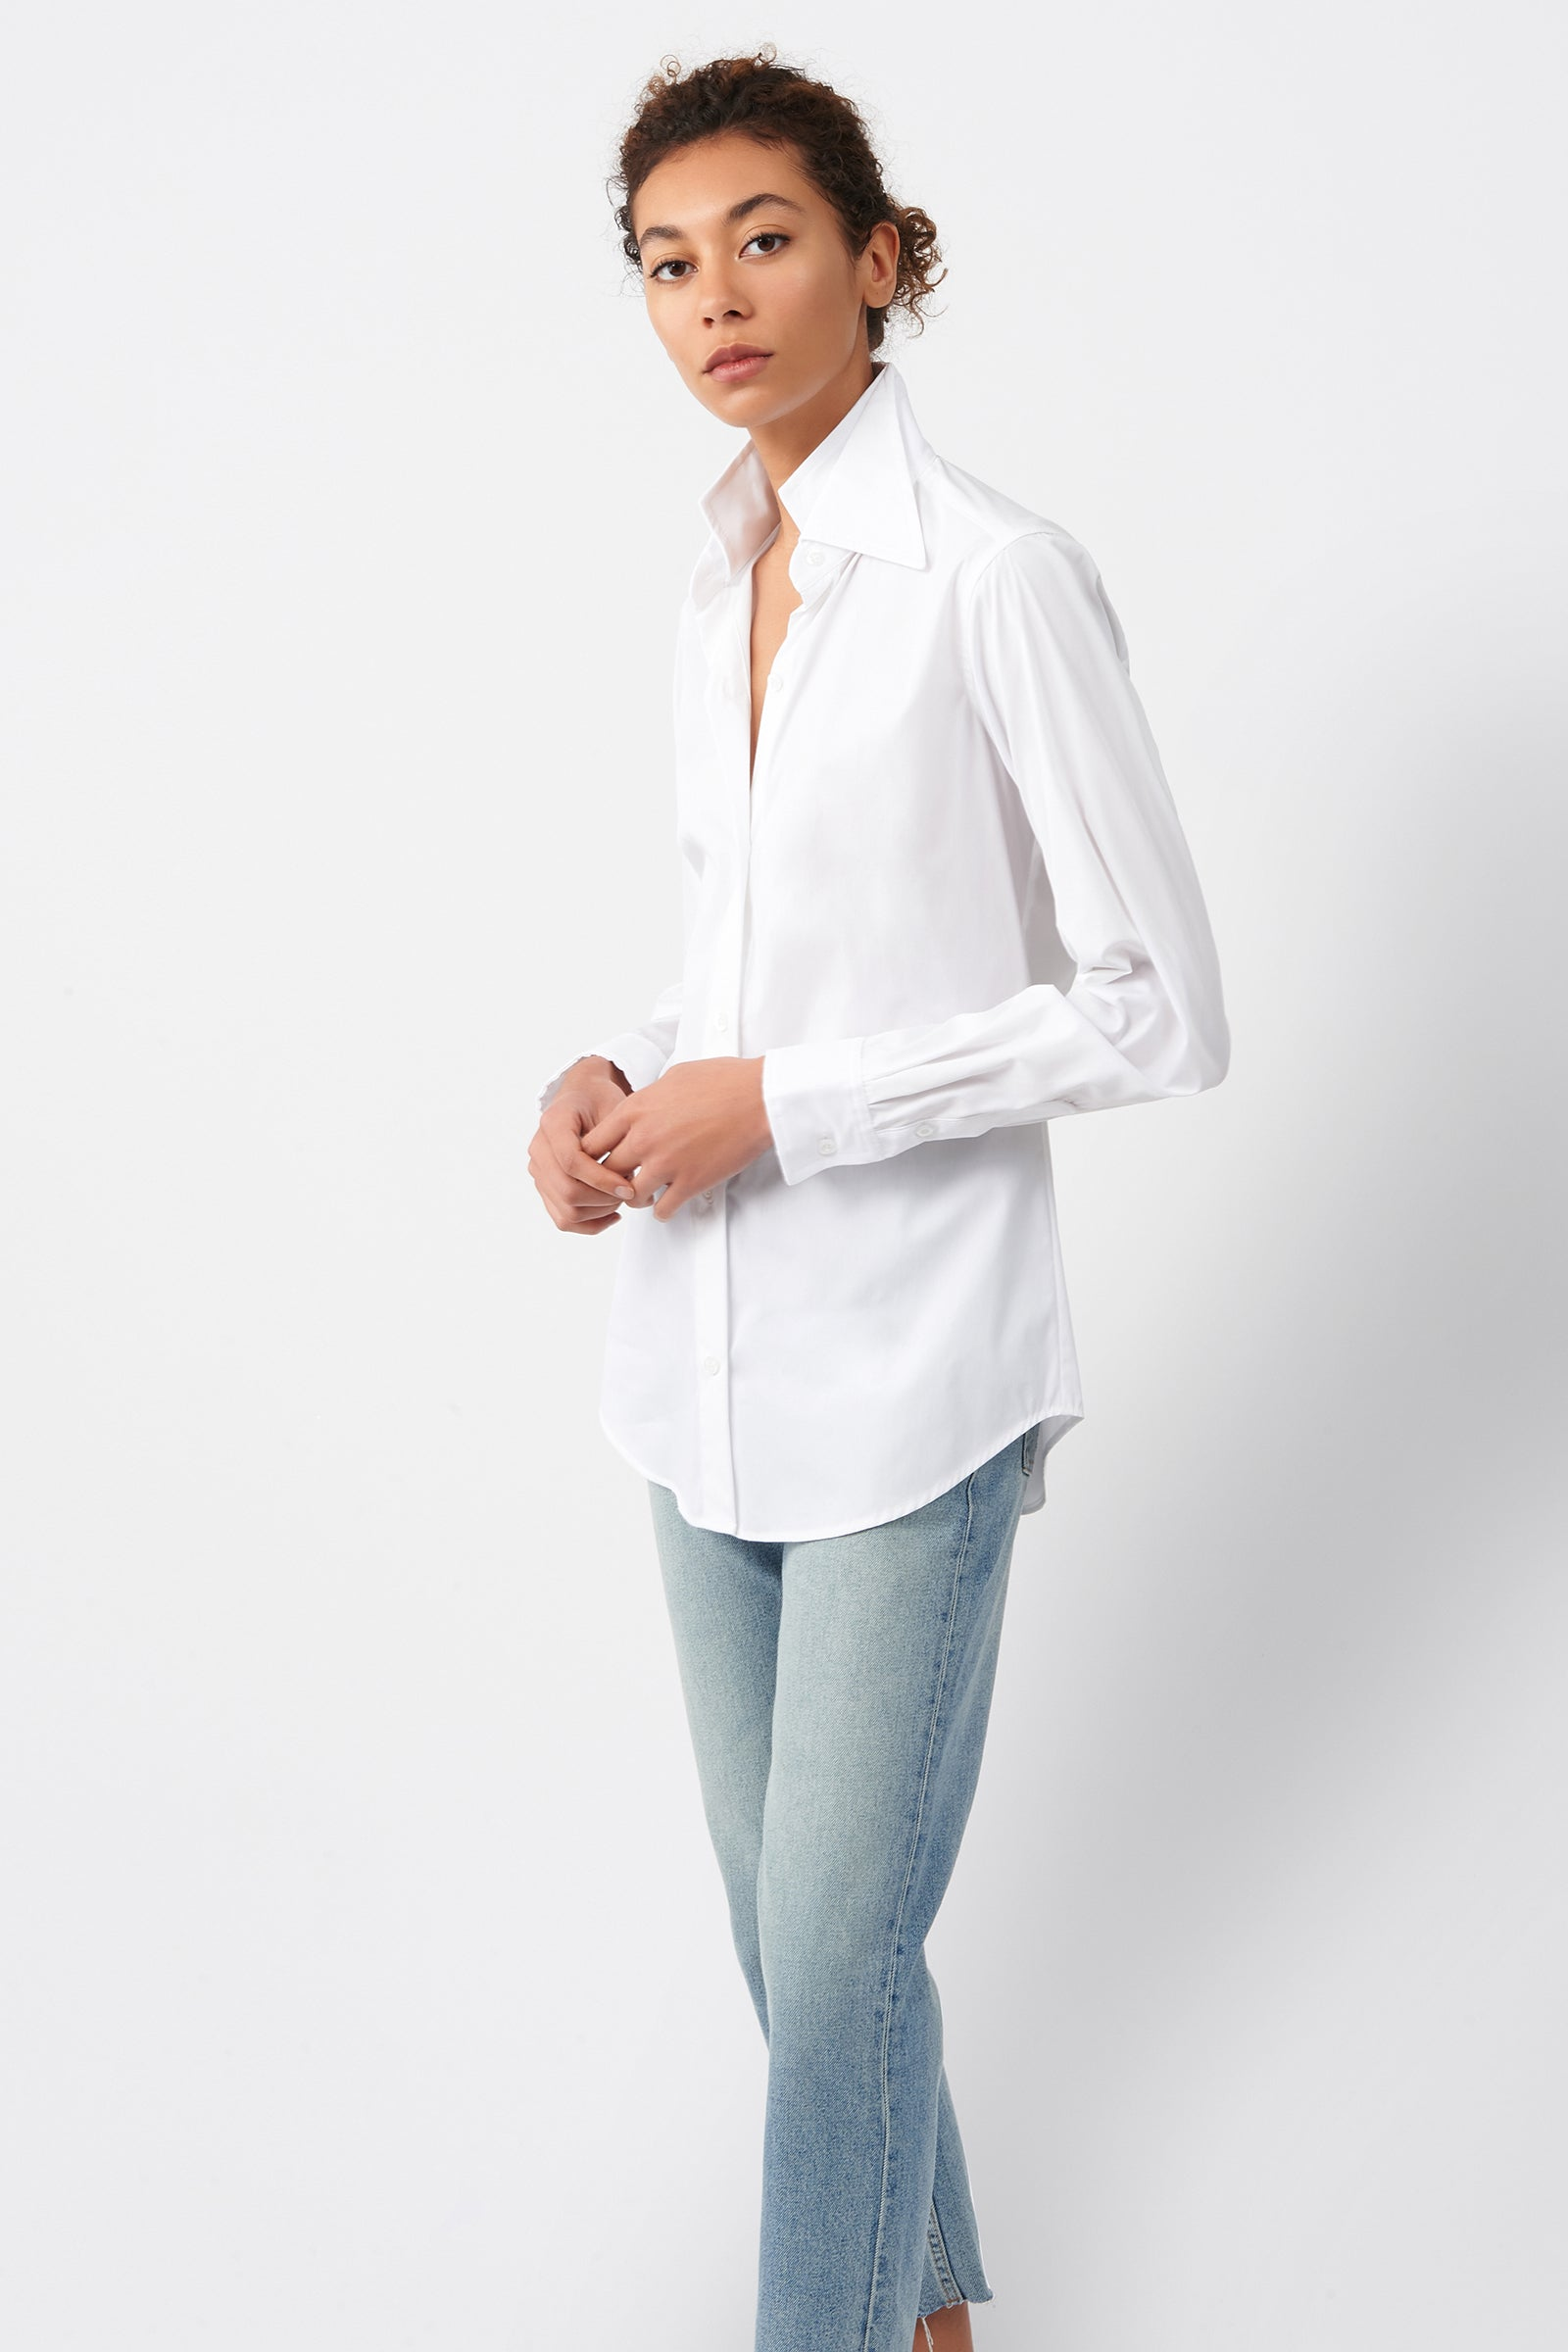 Kal Rieman Double Collar Shirt in White Cotton on Model Front Side View